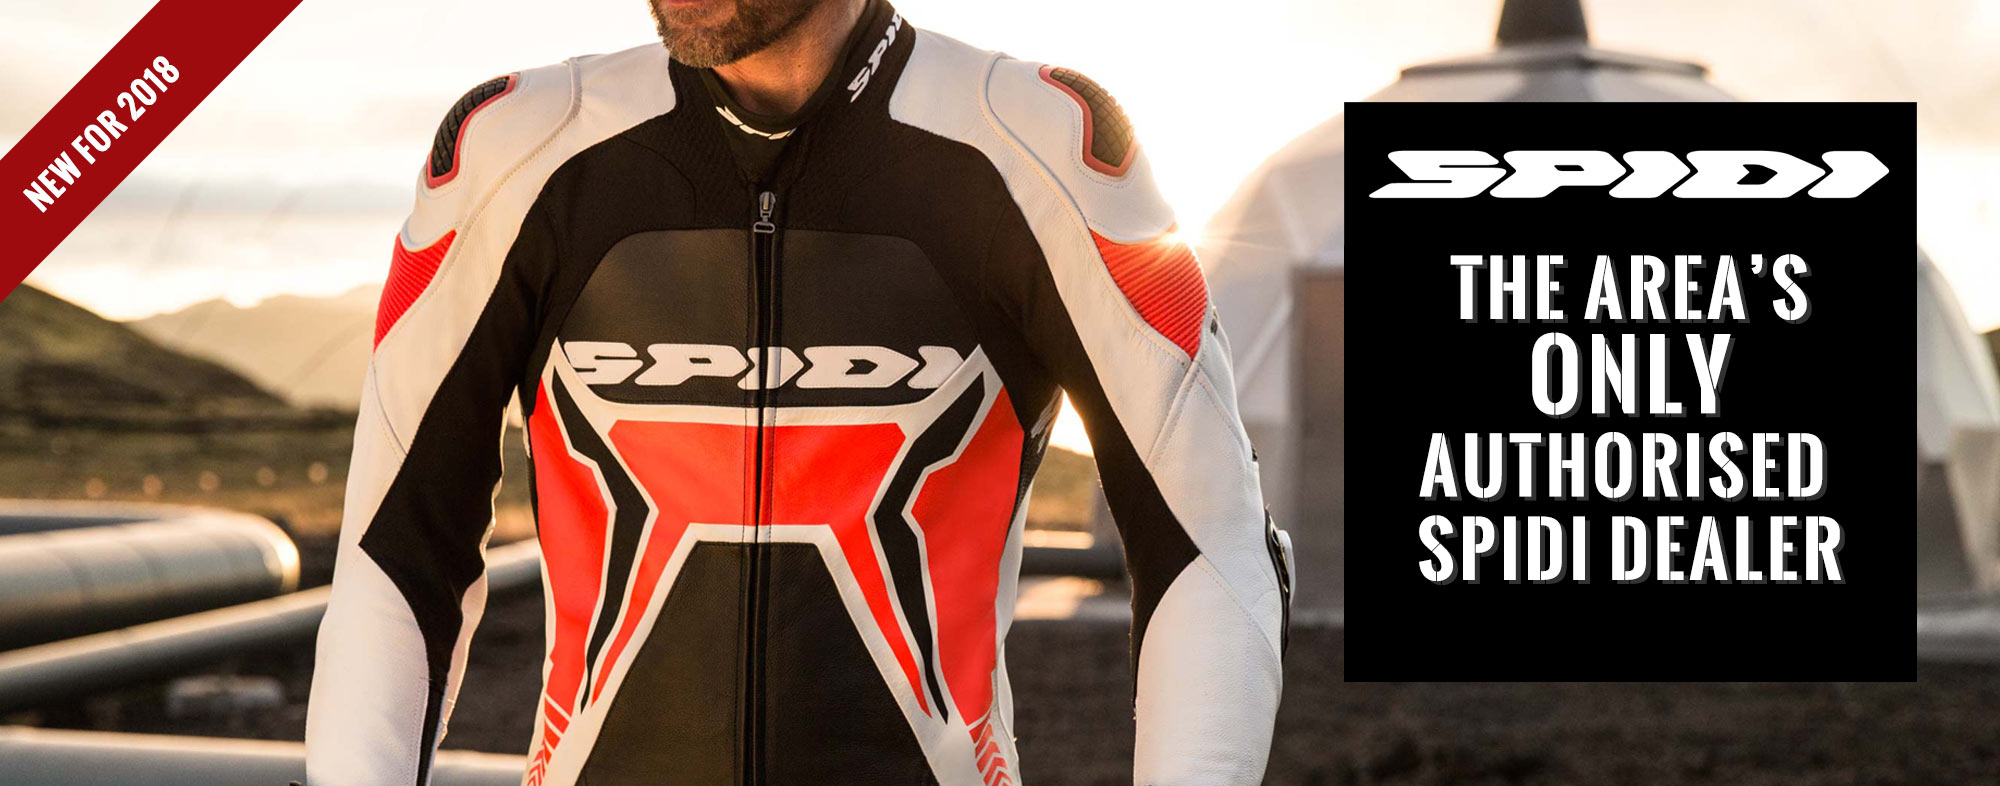 MSG Bike Gear - The areas only authorised SPIDI retailer!